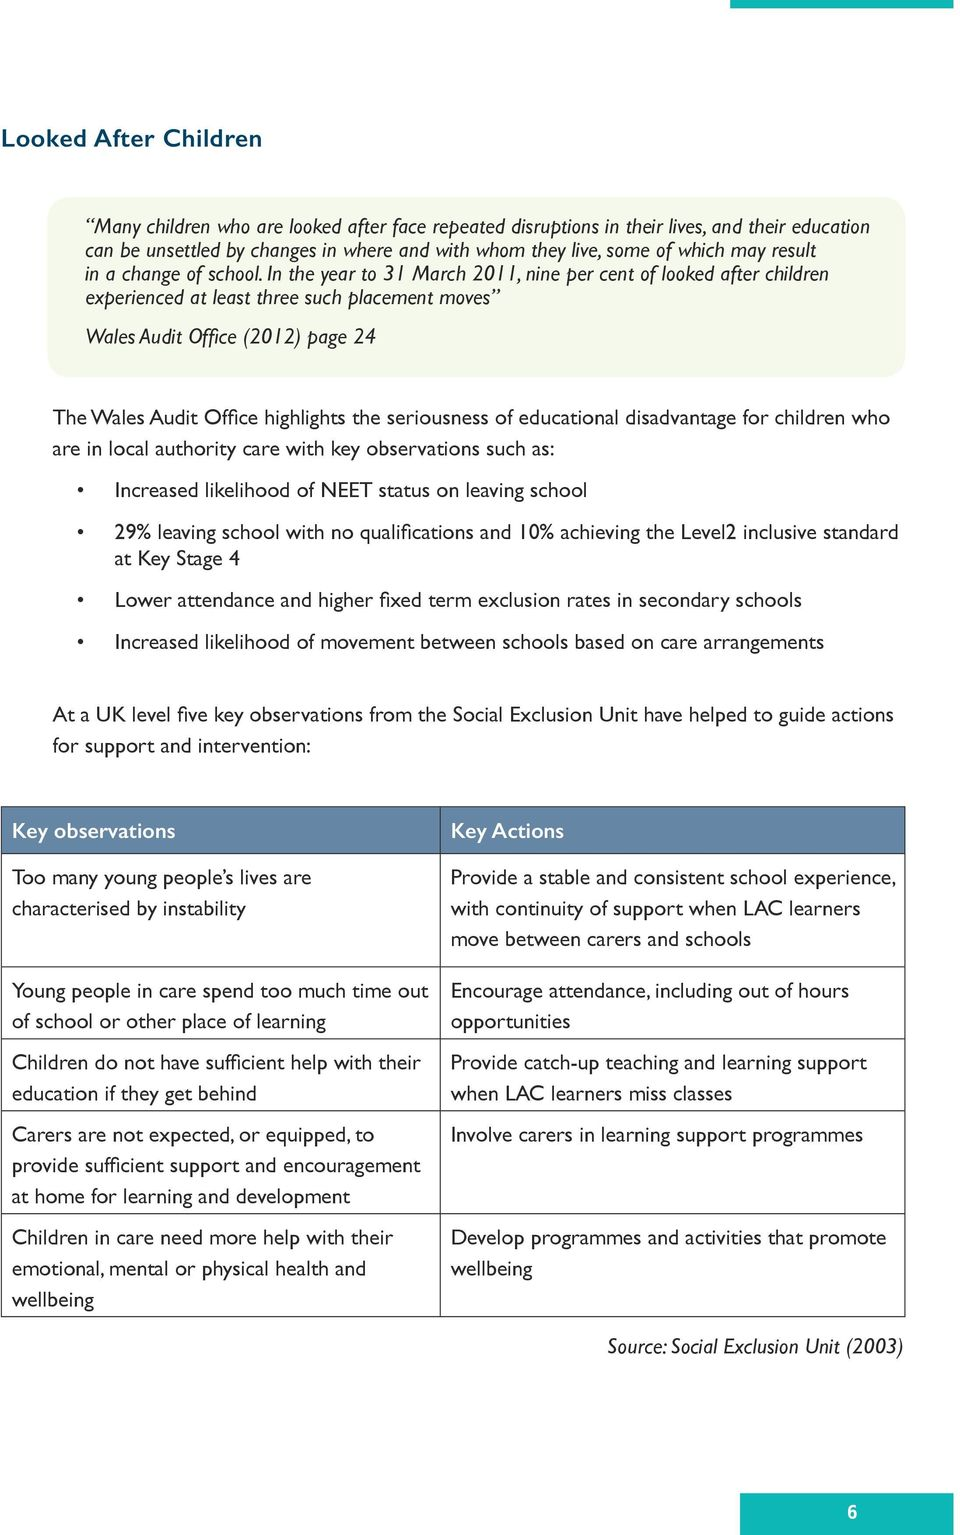 In the year to 31 March 2011, nine per cent of looked after children experienced at least three such placement moves Wales Audit Office (2012) page 24 The Wales Audit Office highlights the